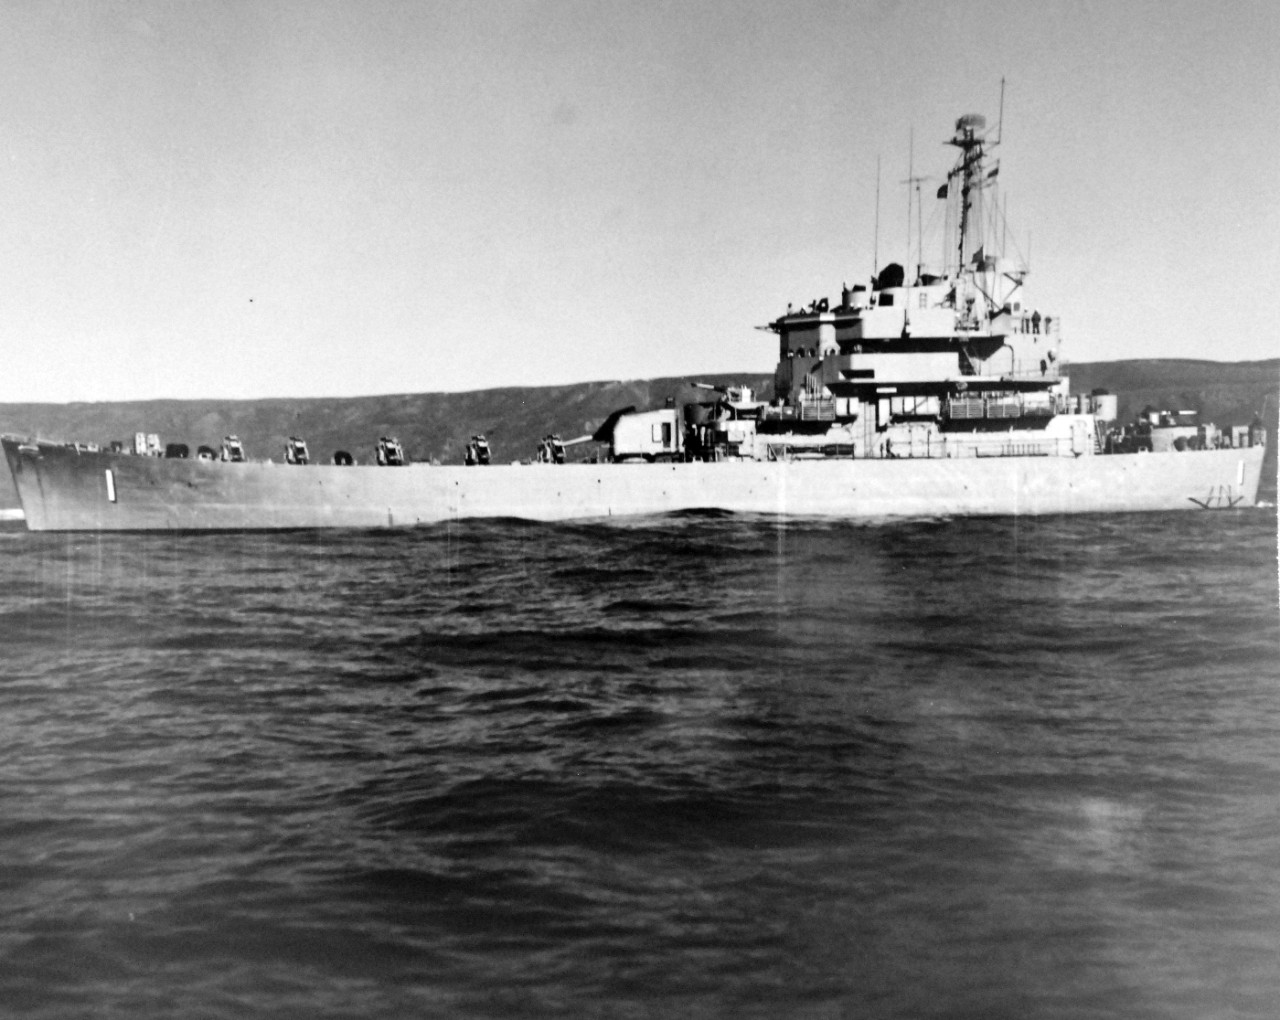 80-G-689754:  USS Carronade (IFS-1), 1955-59.   Carronade was an Inshore Fire Support Ship, built to provide gunfire support to amphibious landings or operations close to shore. Official U.S. Navy Photograph, now in the collections of the National Archives.  (2017/11/01).  Photograph is extremely curved.